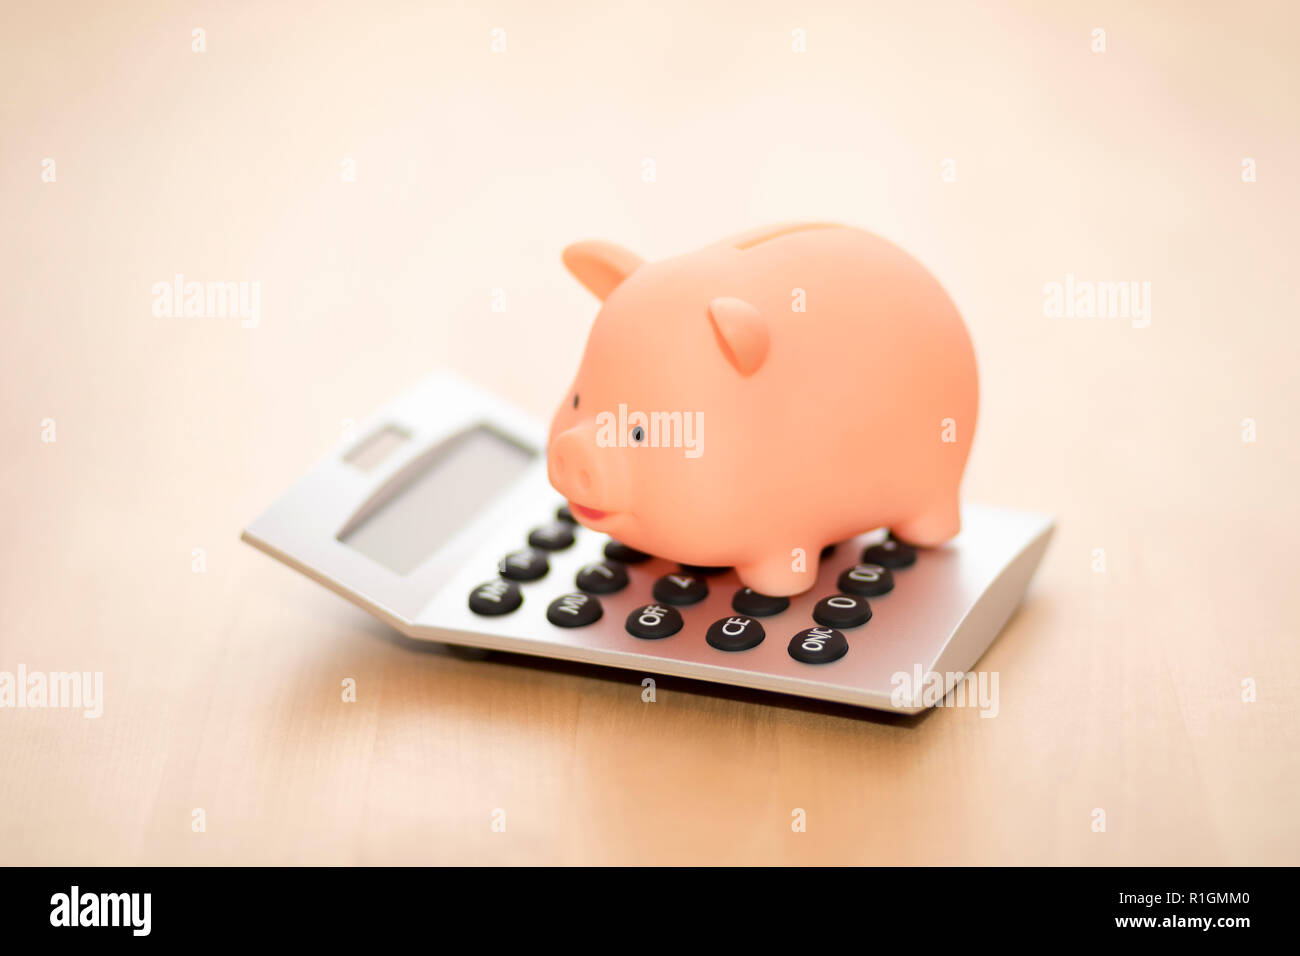 Piggy bank on calculator. Saving, accounting or banking concept. Stock Photo